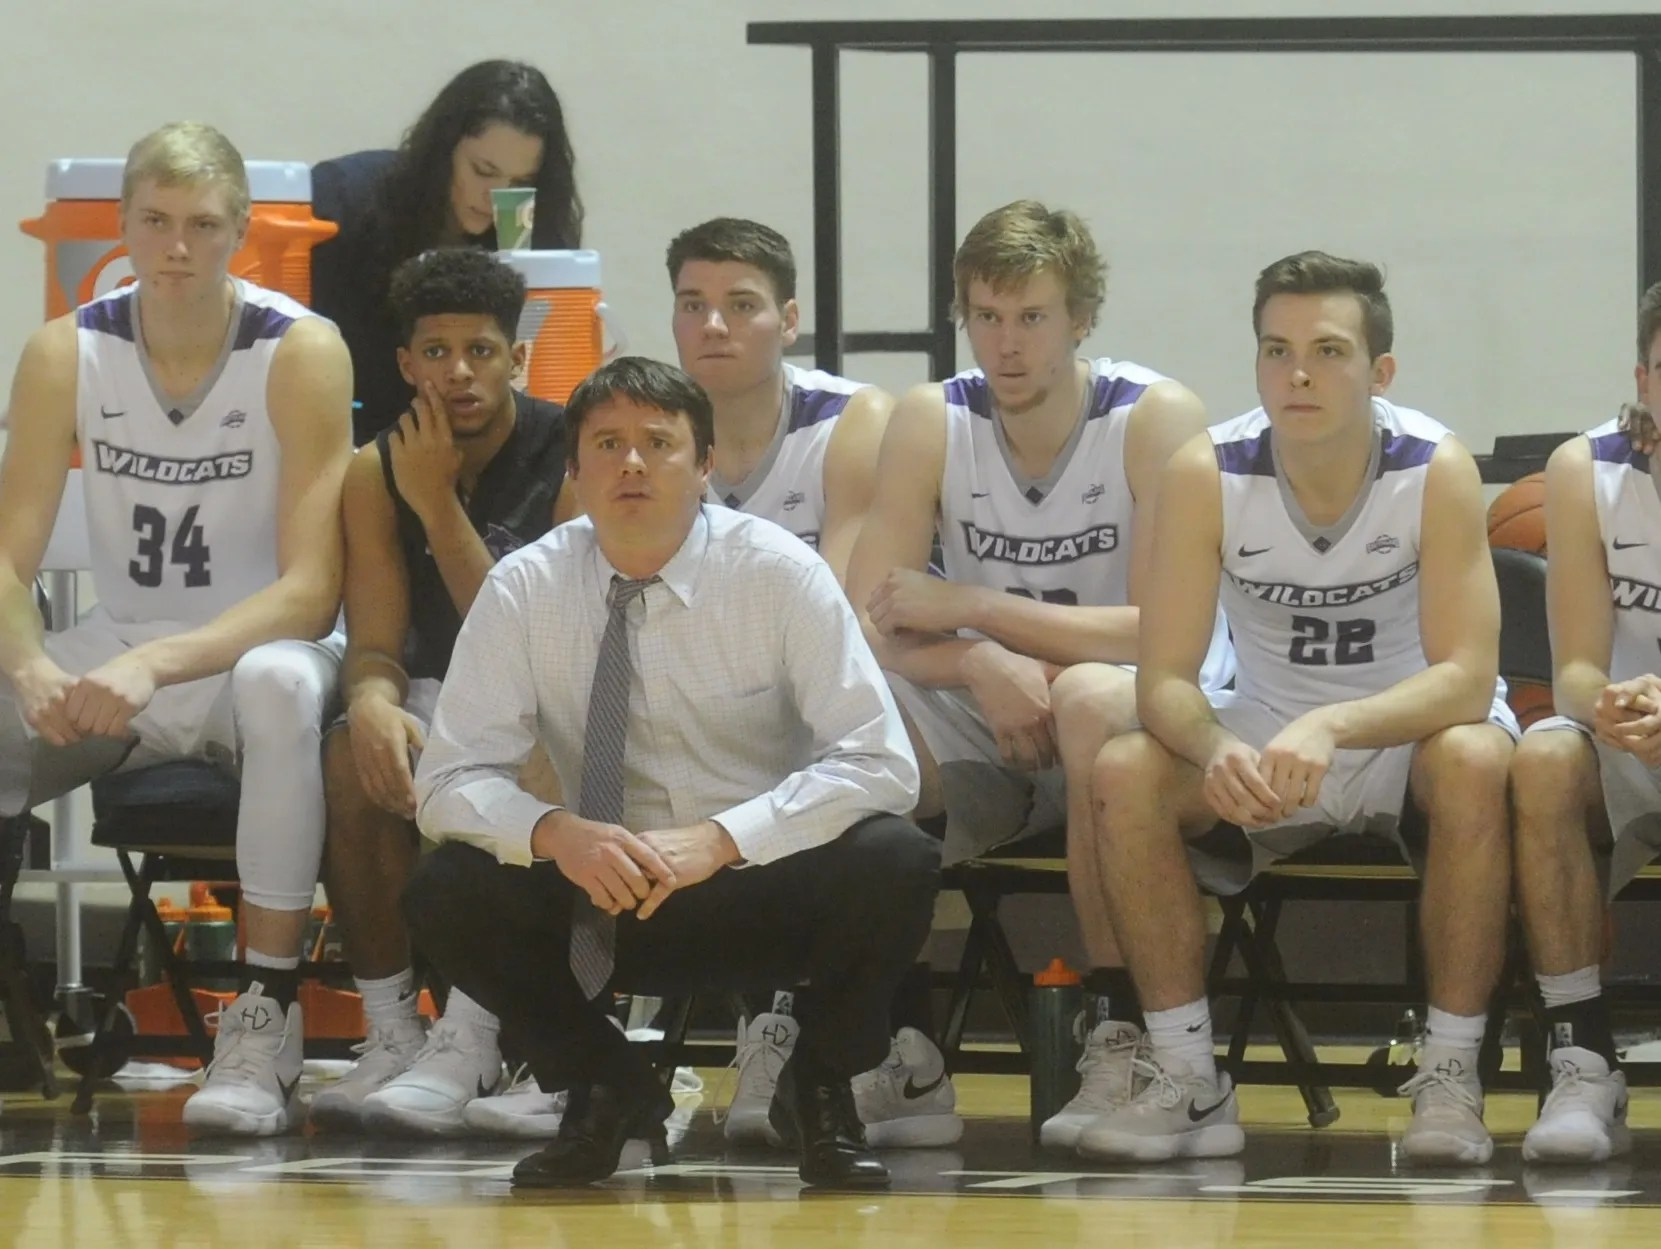 Patience pays off for Golding, ACU men's basketball team